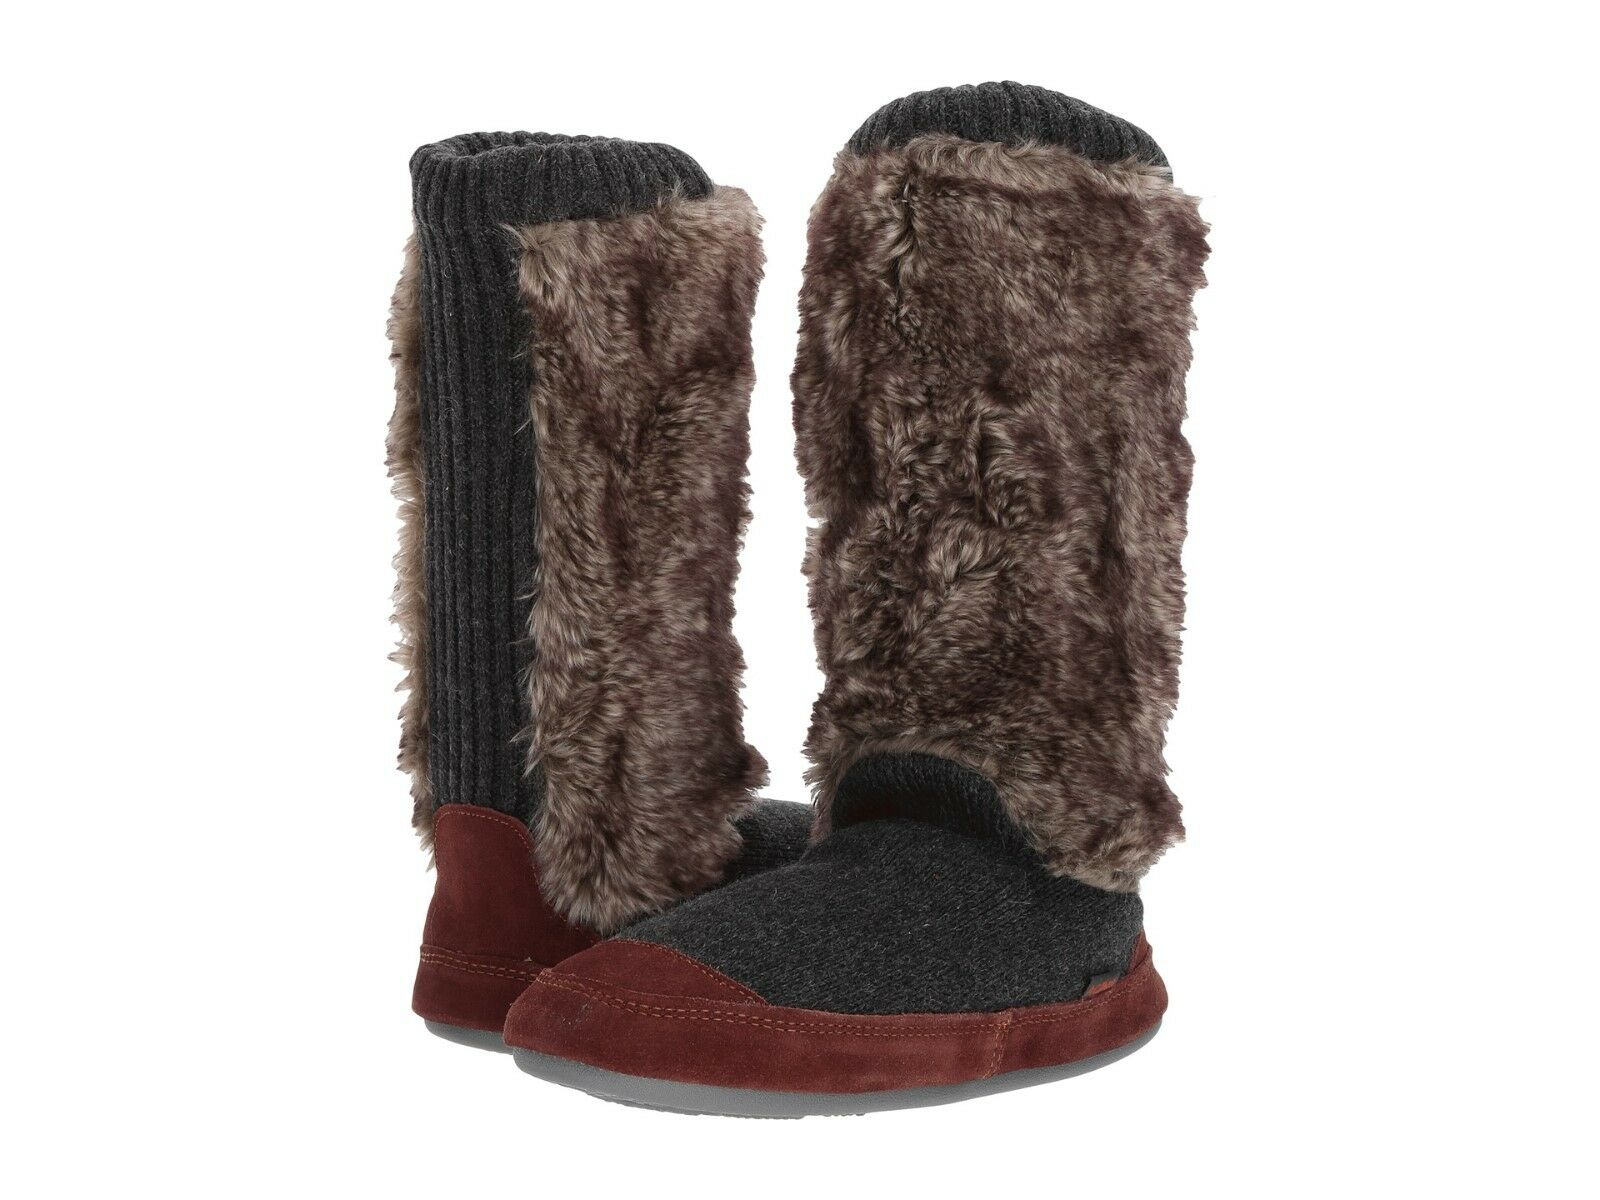 Acorn Slouch Boot Charcoal Fur Medium (M, B)